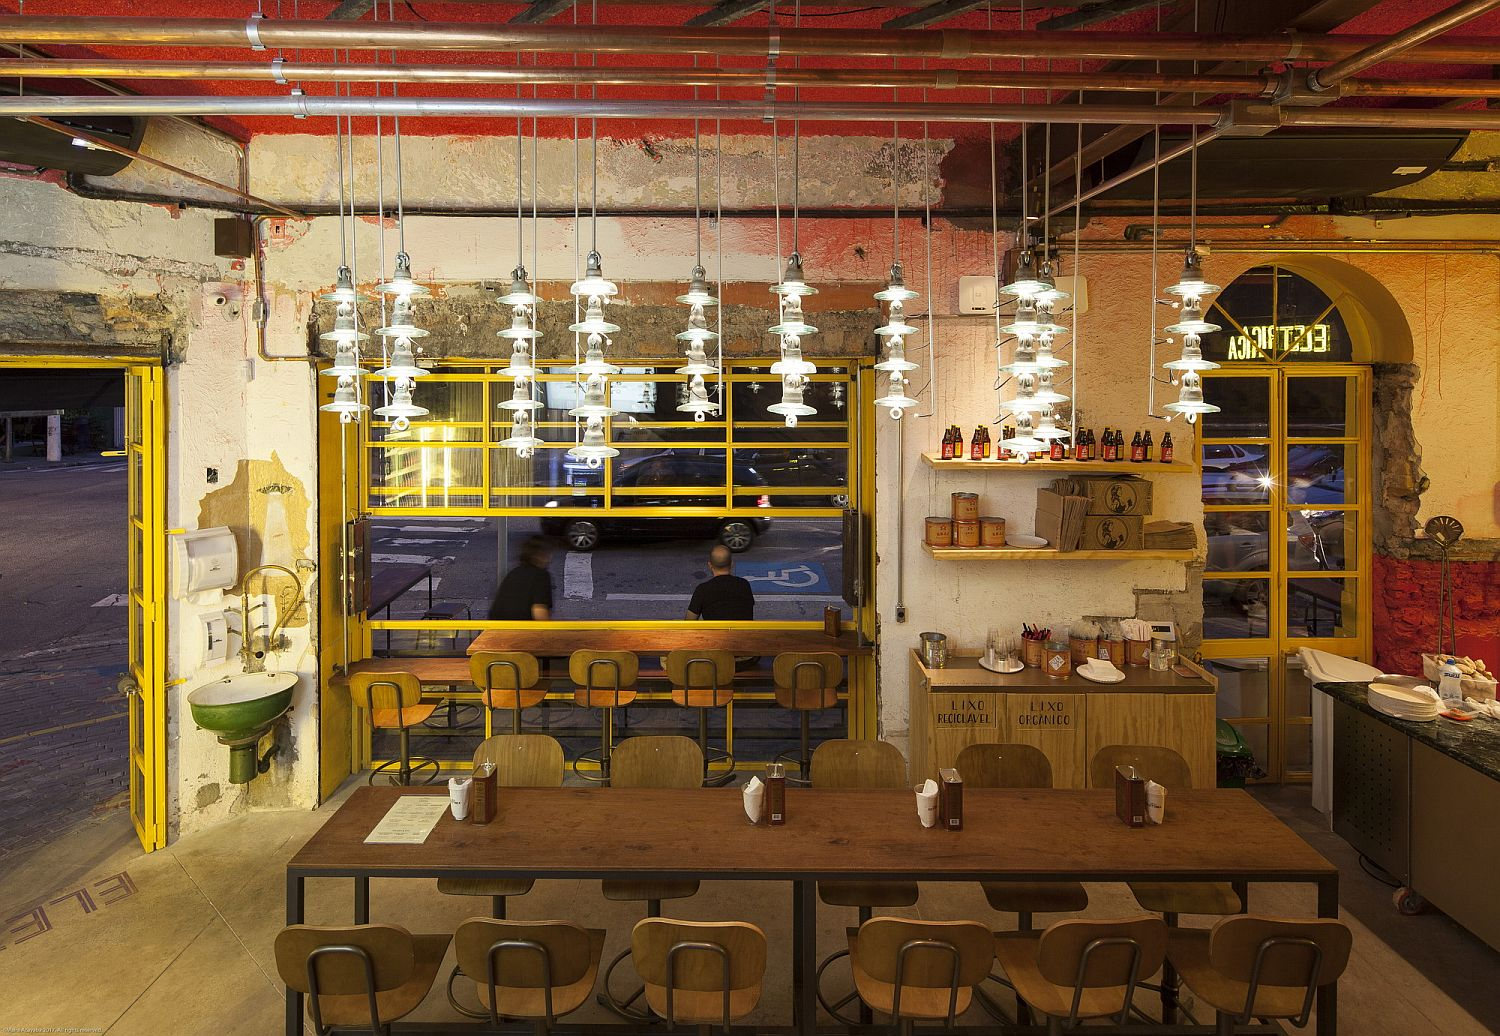 Vivacious-and-light-filled-interior-of-Bráz-Elettrica-Pizza-Restaurant